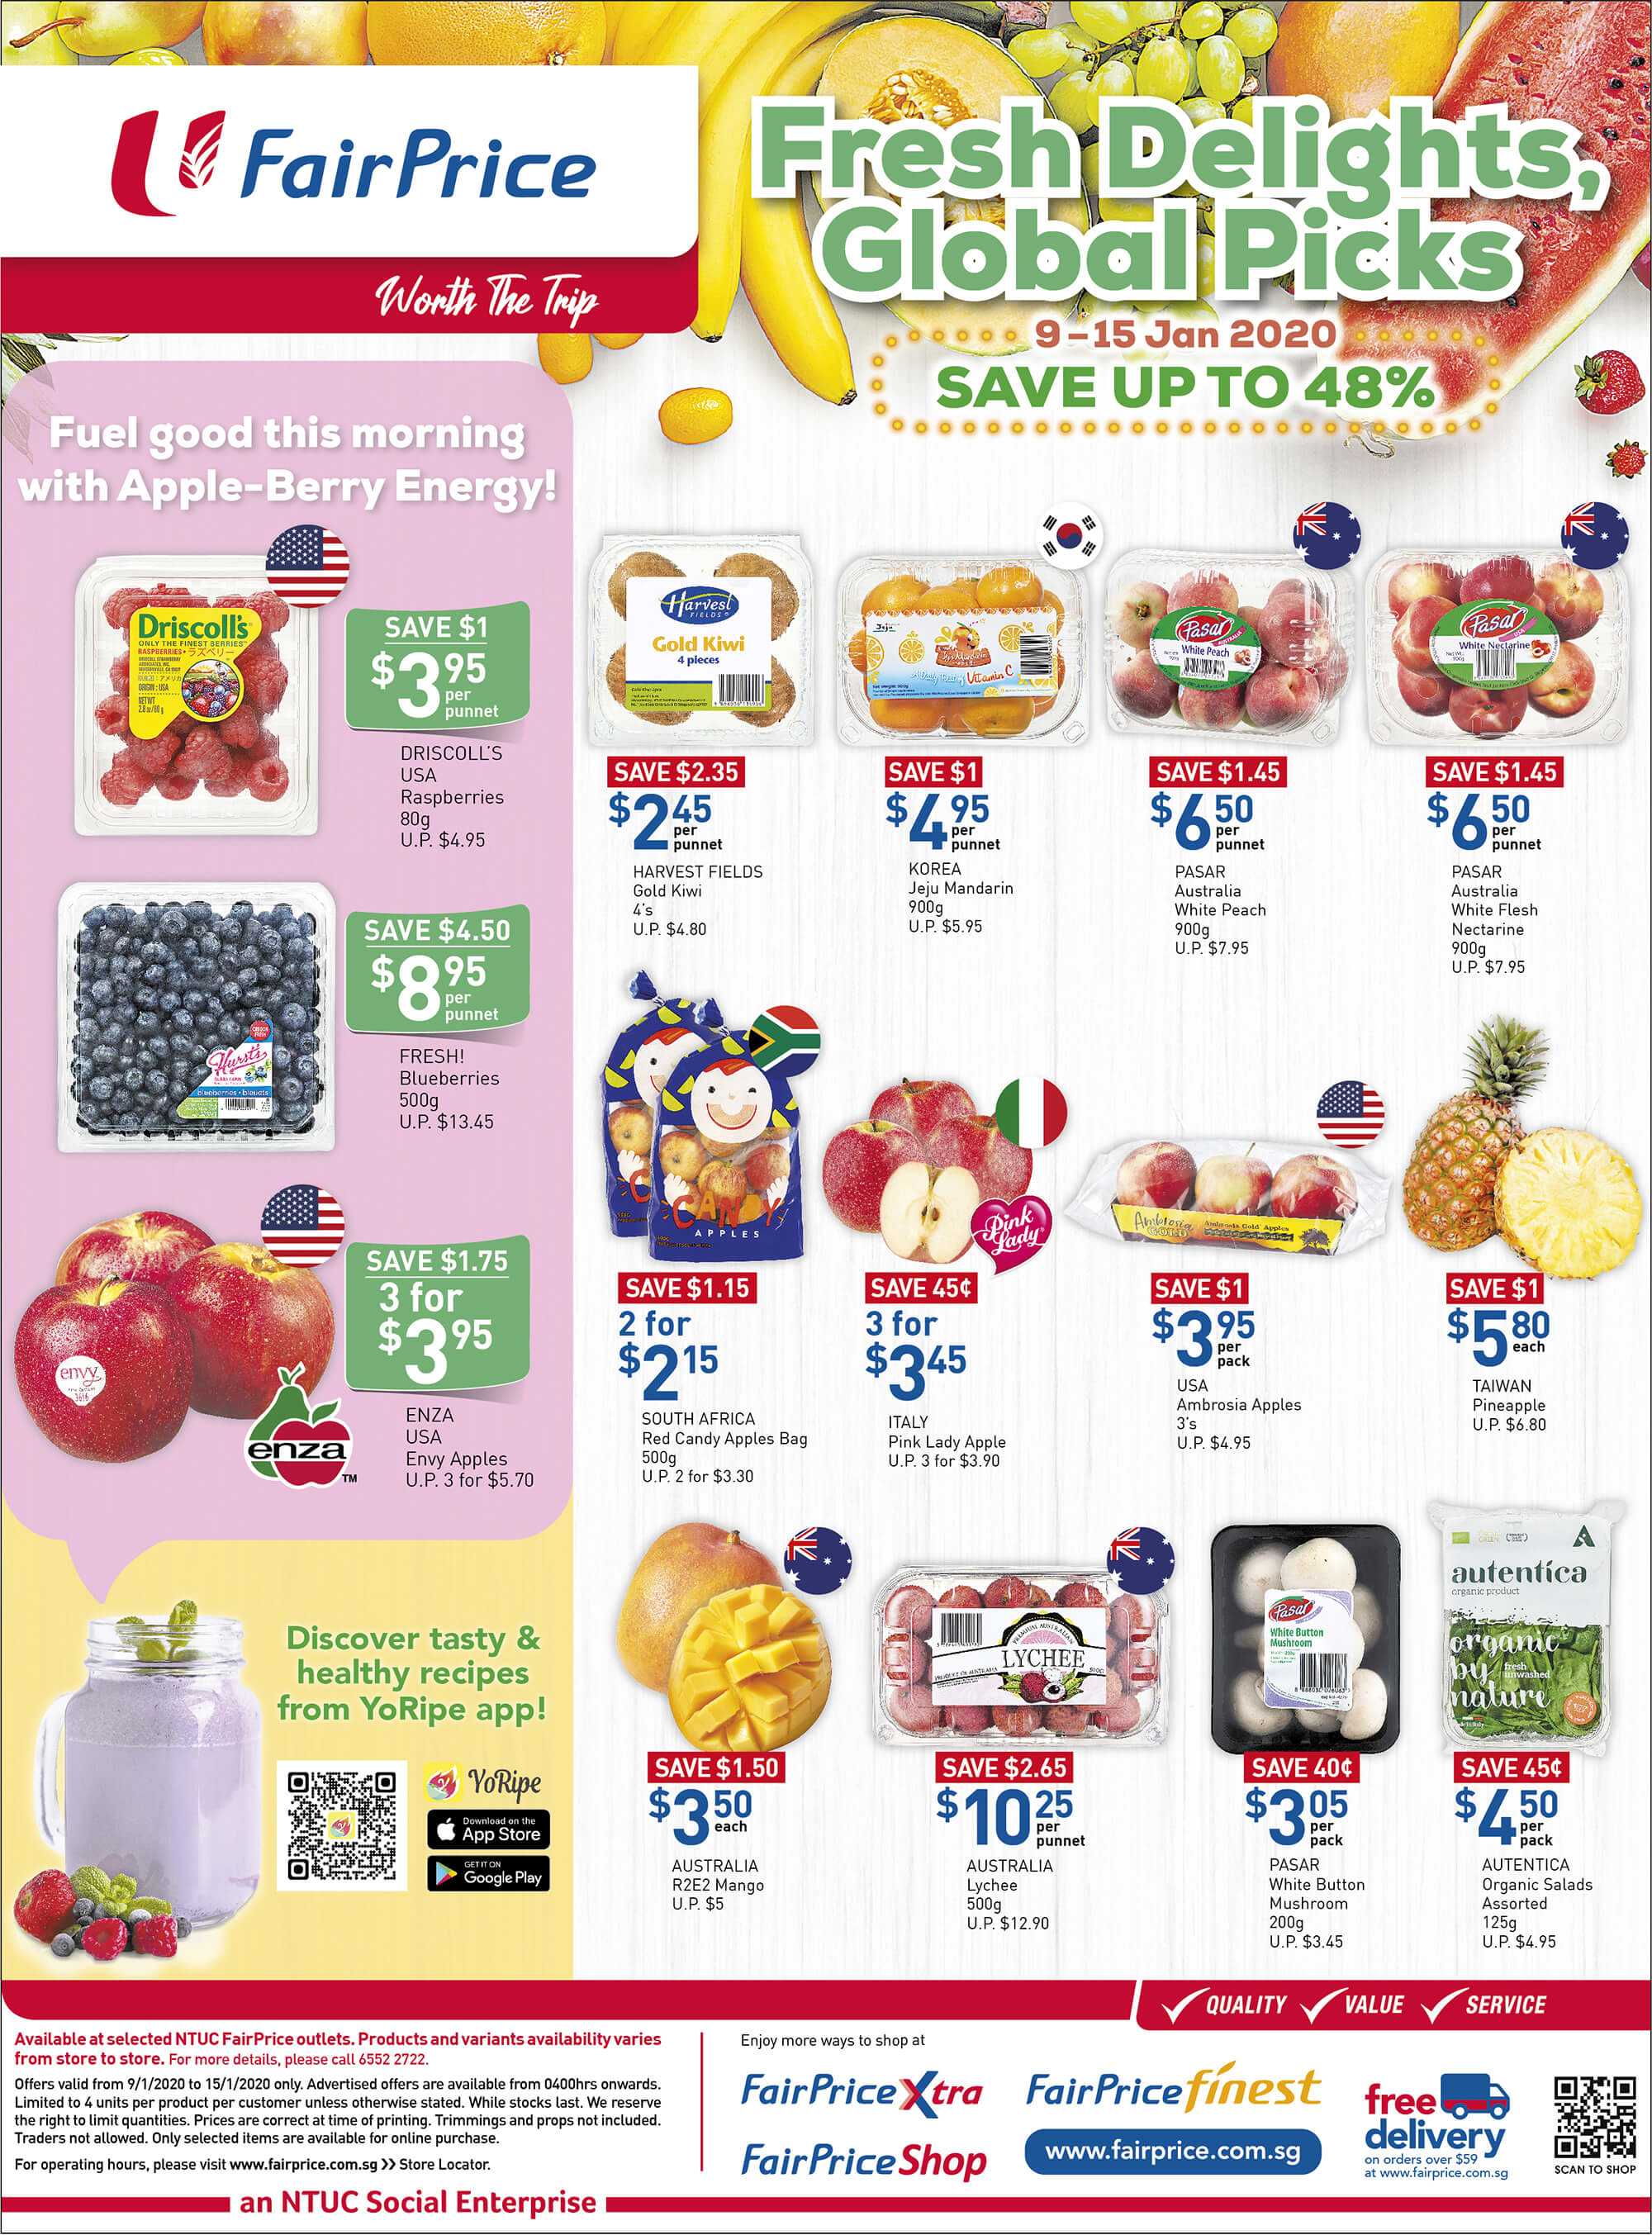 NTUC FairPrice SG Your Weekly Saver Promotions 9-15 Jan 2020 | Why Not Deals 5 & Promotions